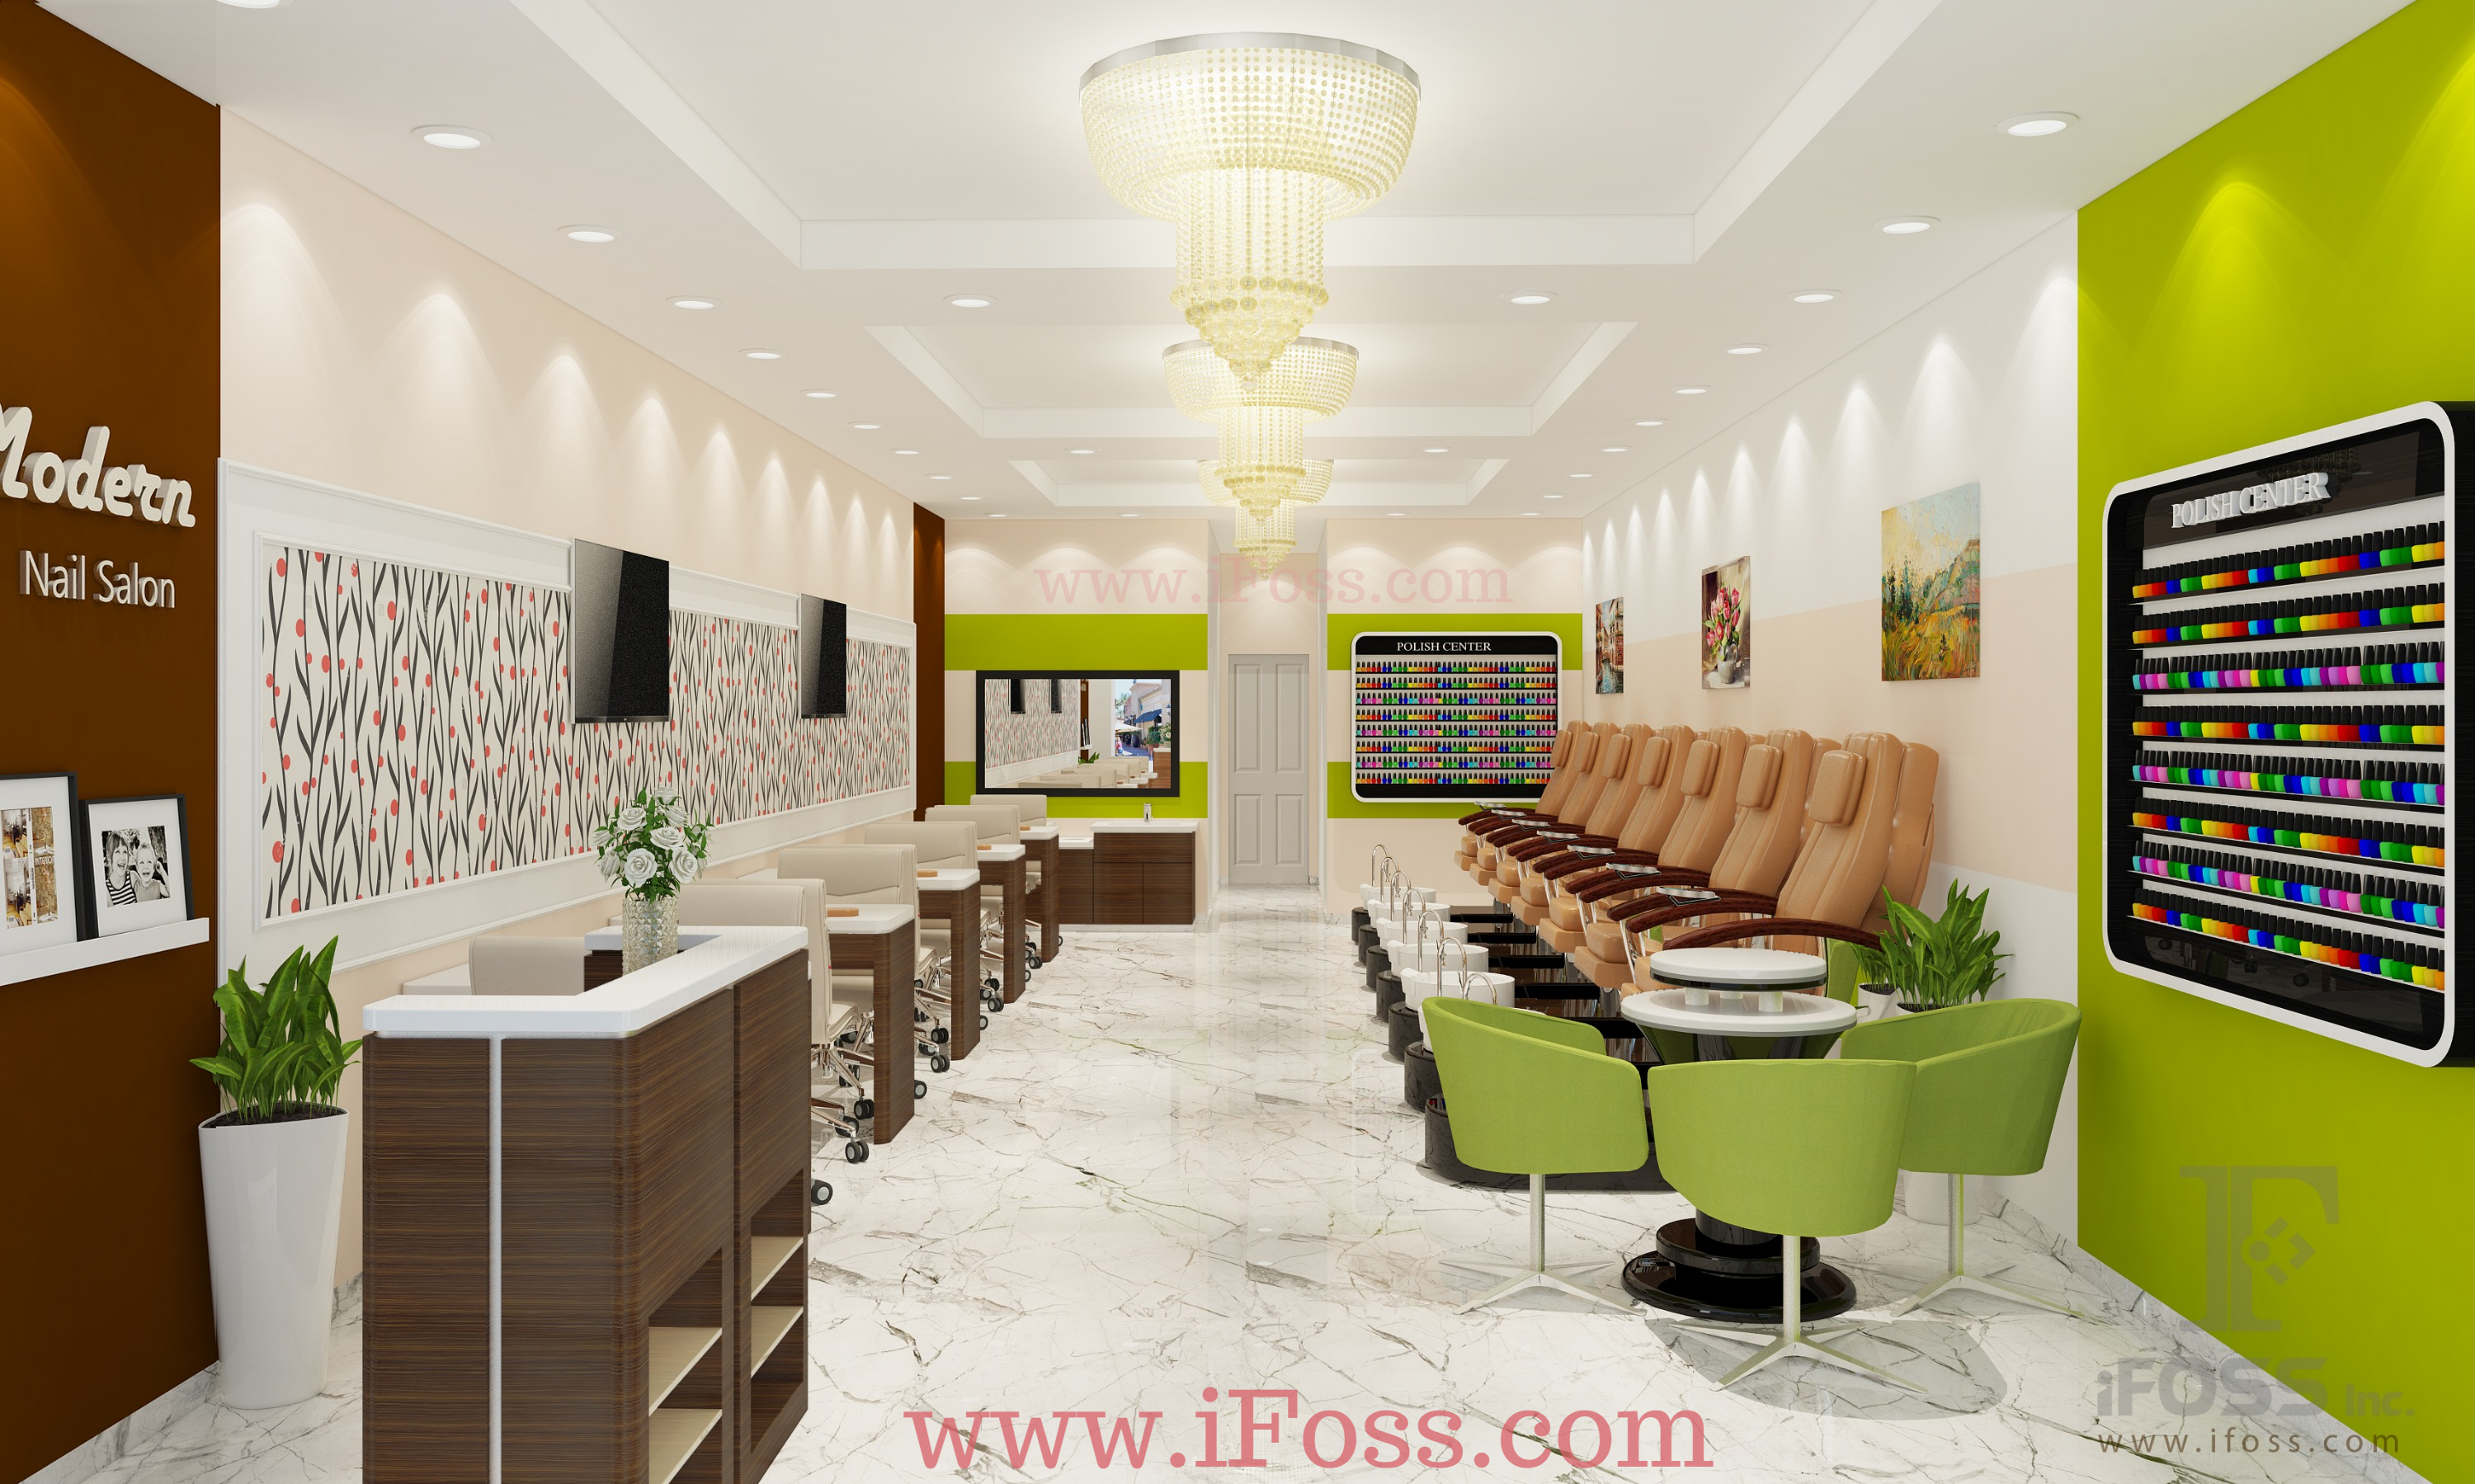 Design by #iFoss Contact ☎ : 7145567895 or Web : www.iFoss.com ...